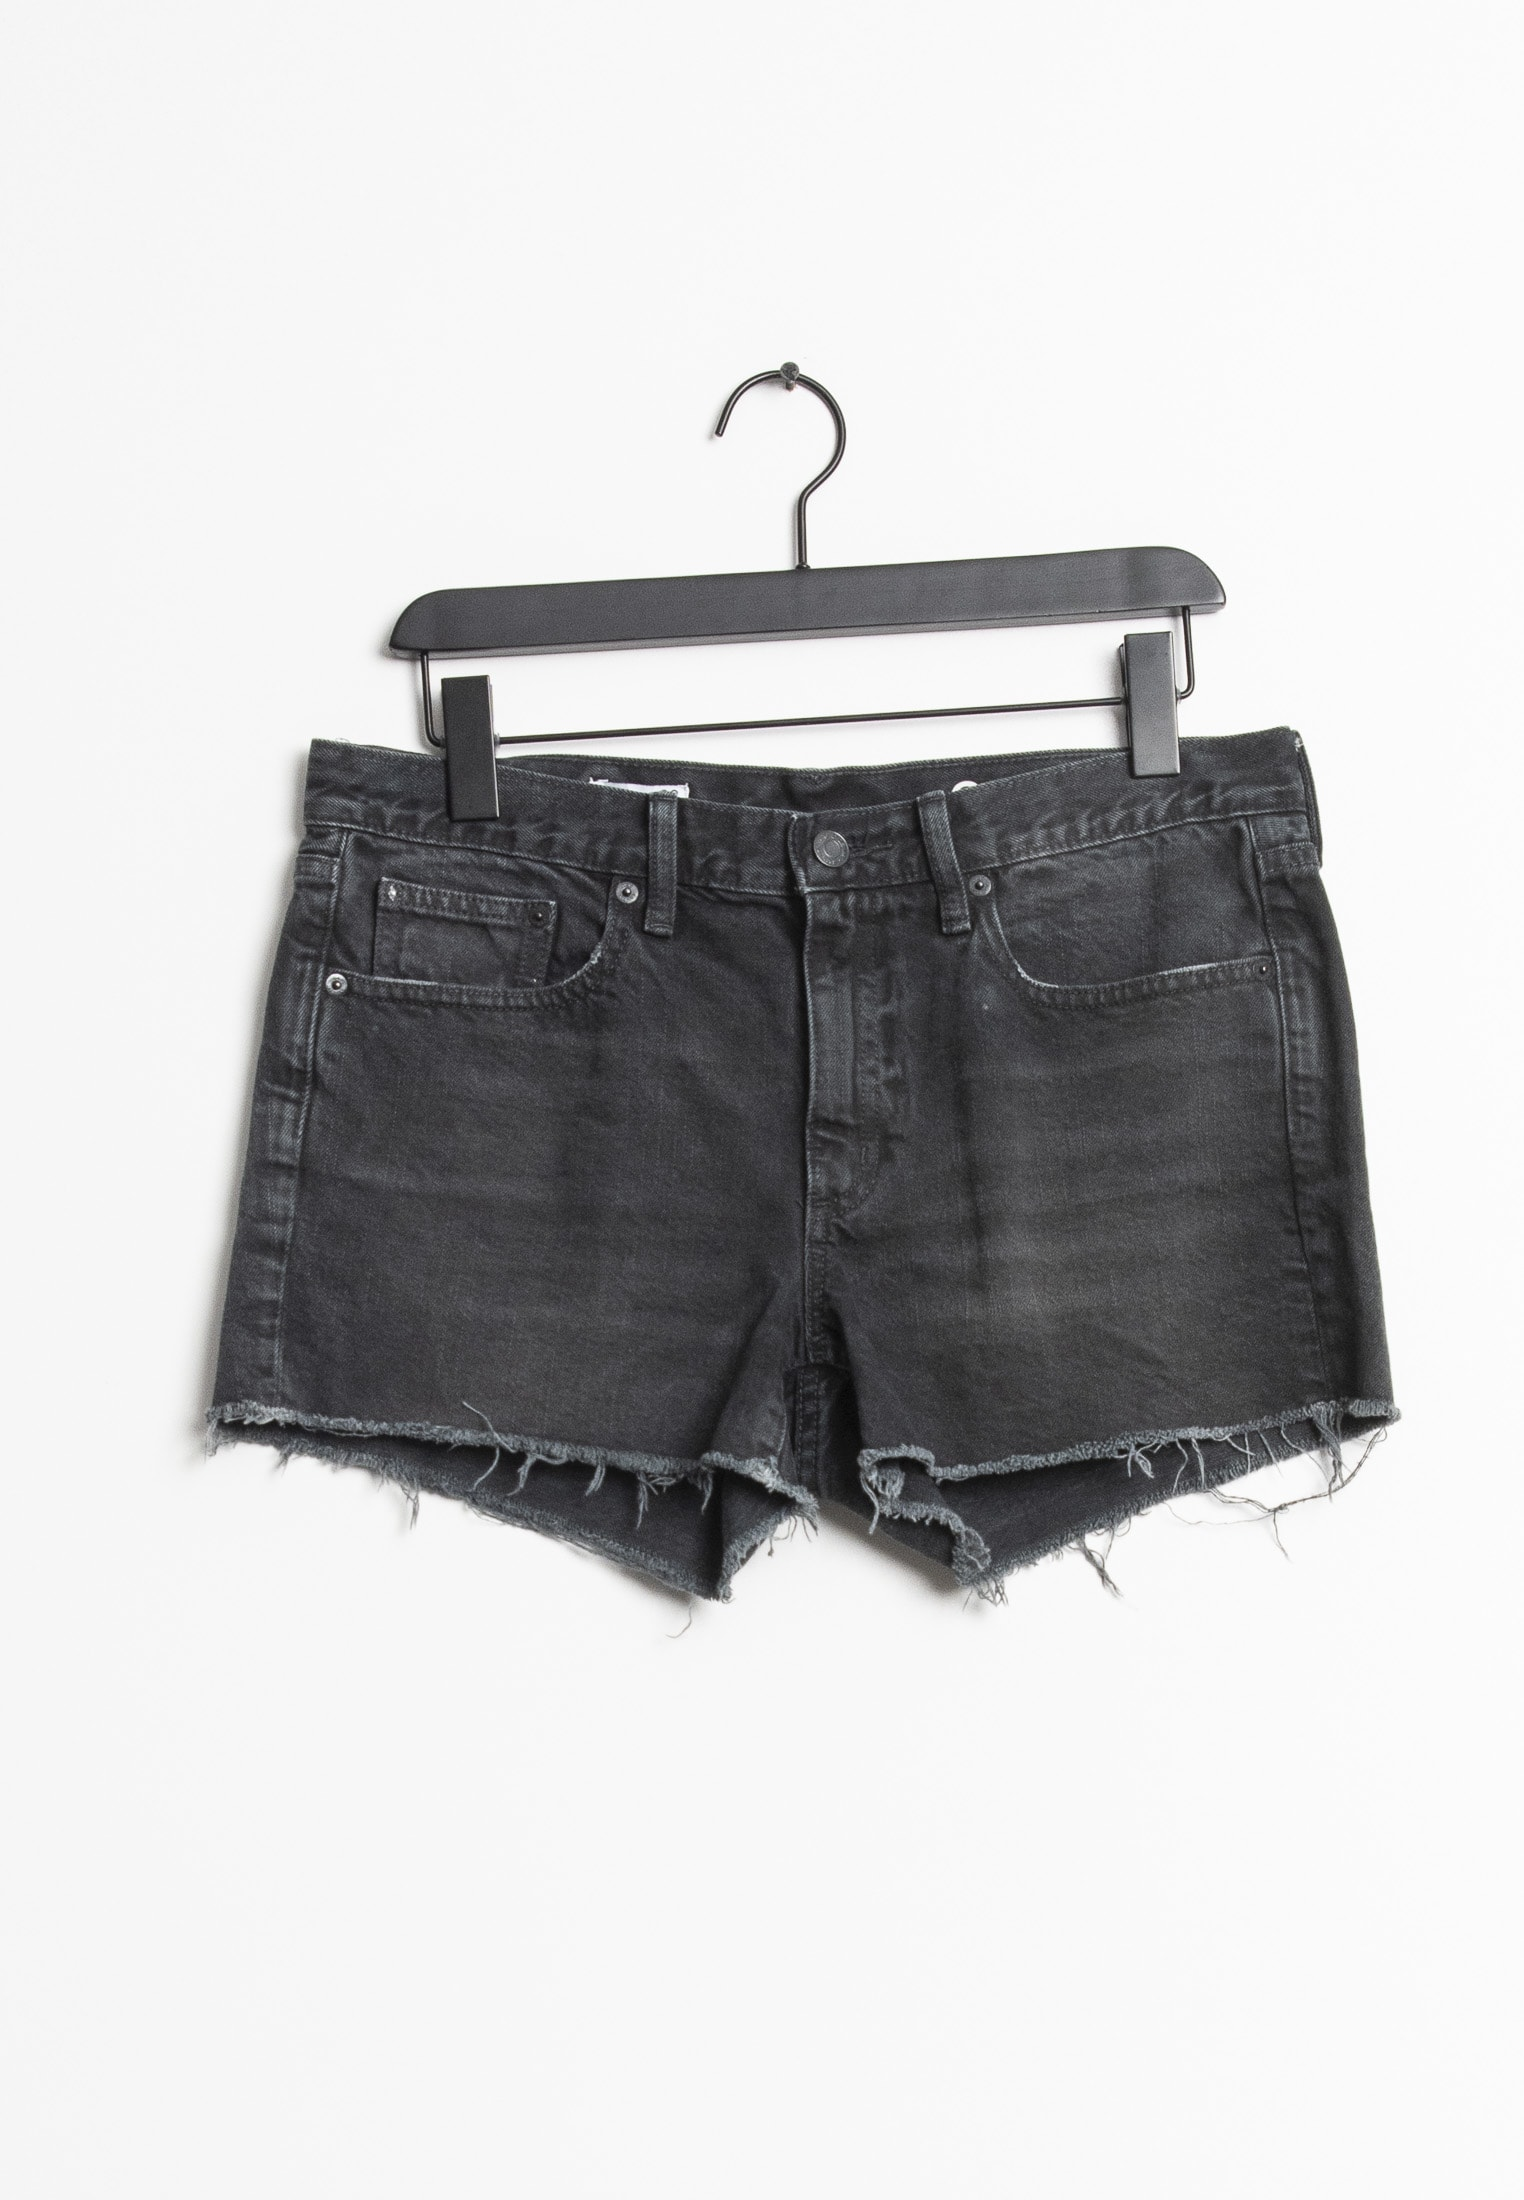 GAP shorts, sort, 28